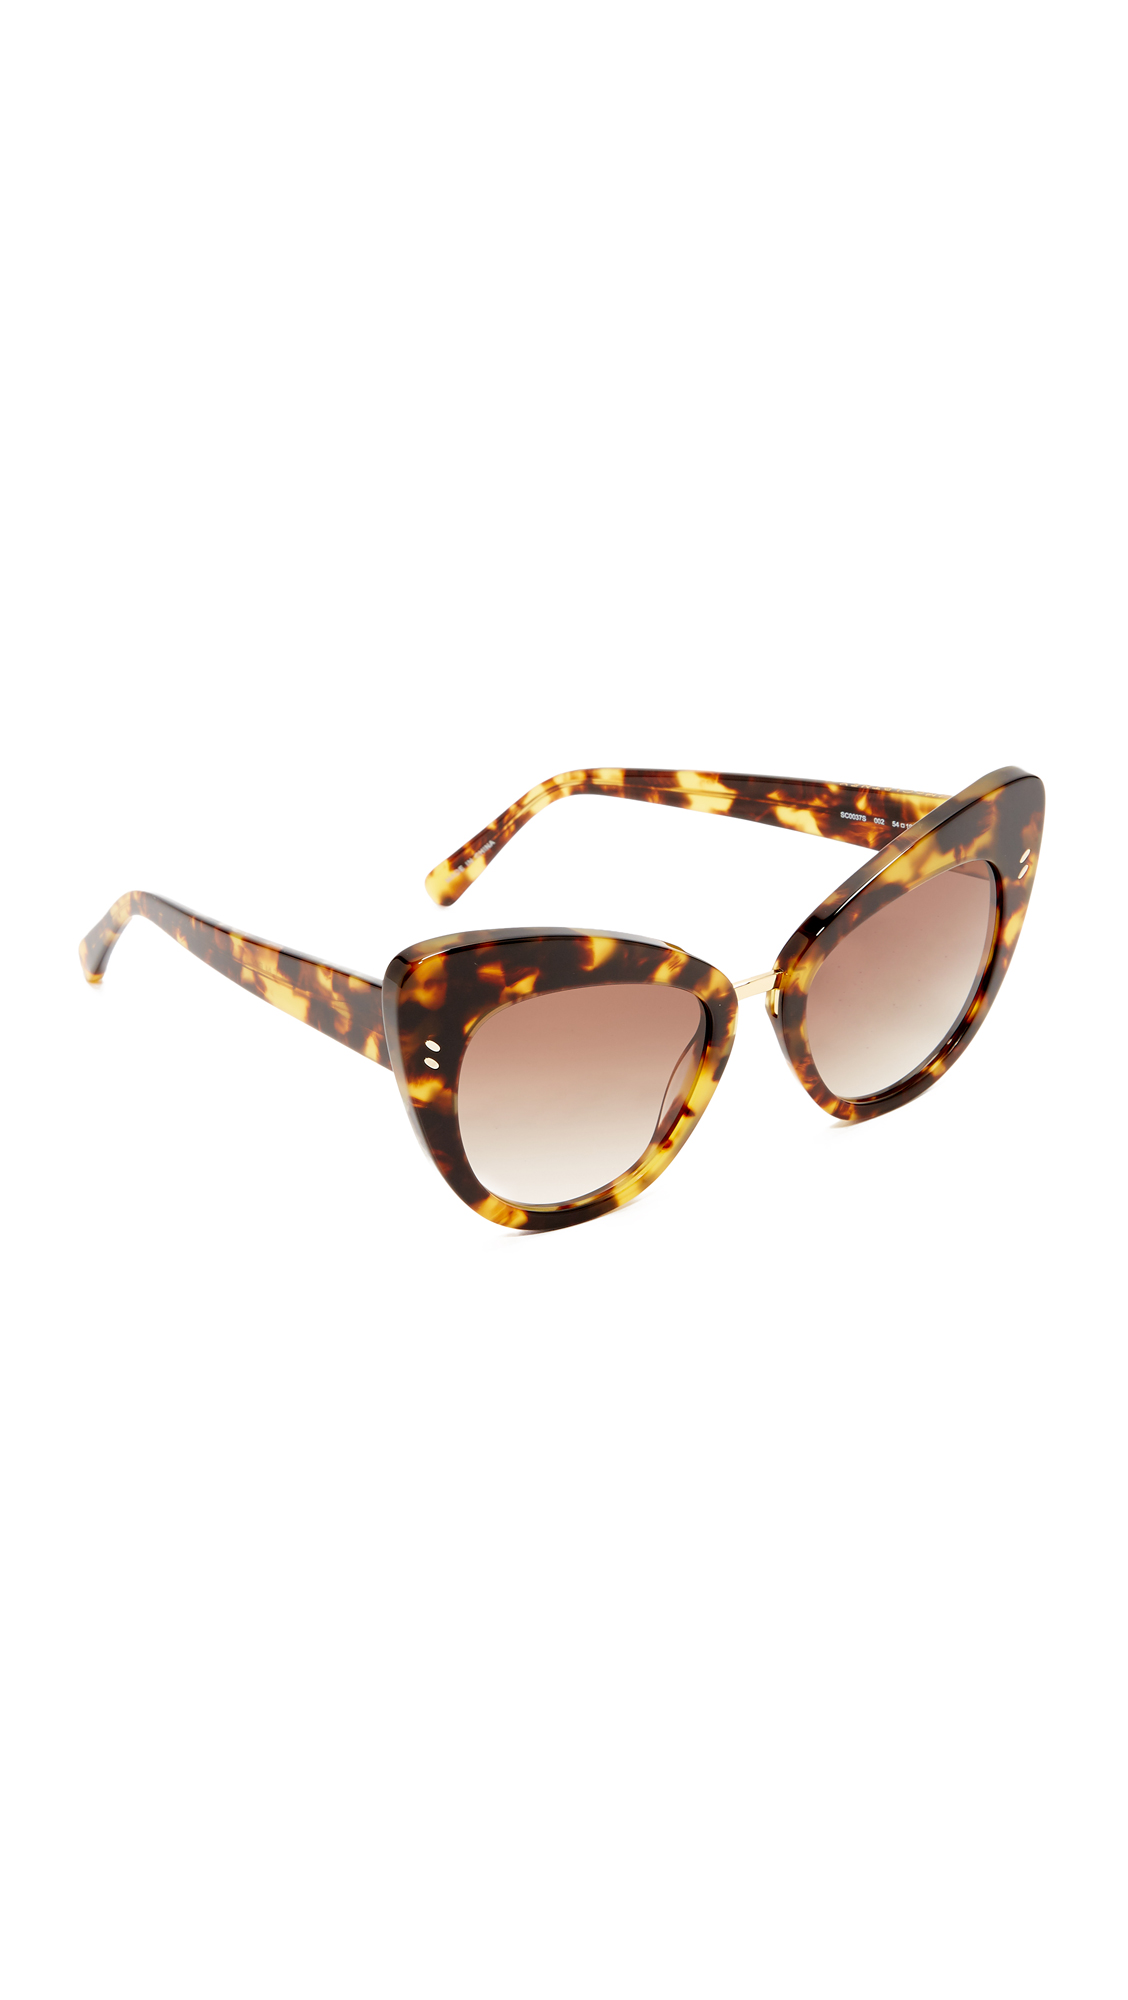 Stylish Stella McCartney cat eye sunglasses with thick, glossy frames and a metal accent at the bridge. Soft pouch and cleaning cloth included. Cateye frame. Non polarized lenses. Imported, China. Measurements Width: 6in / 15cm Height: 2.25in / 5.5